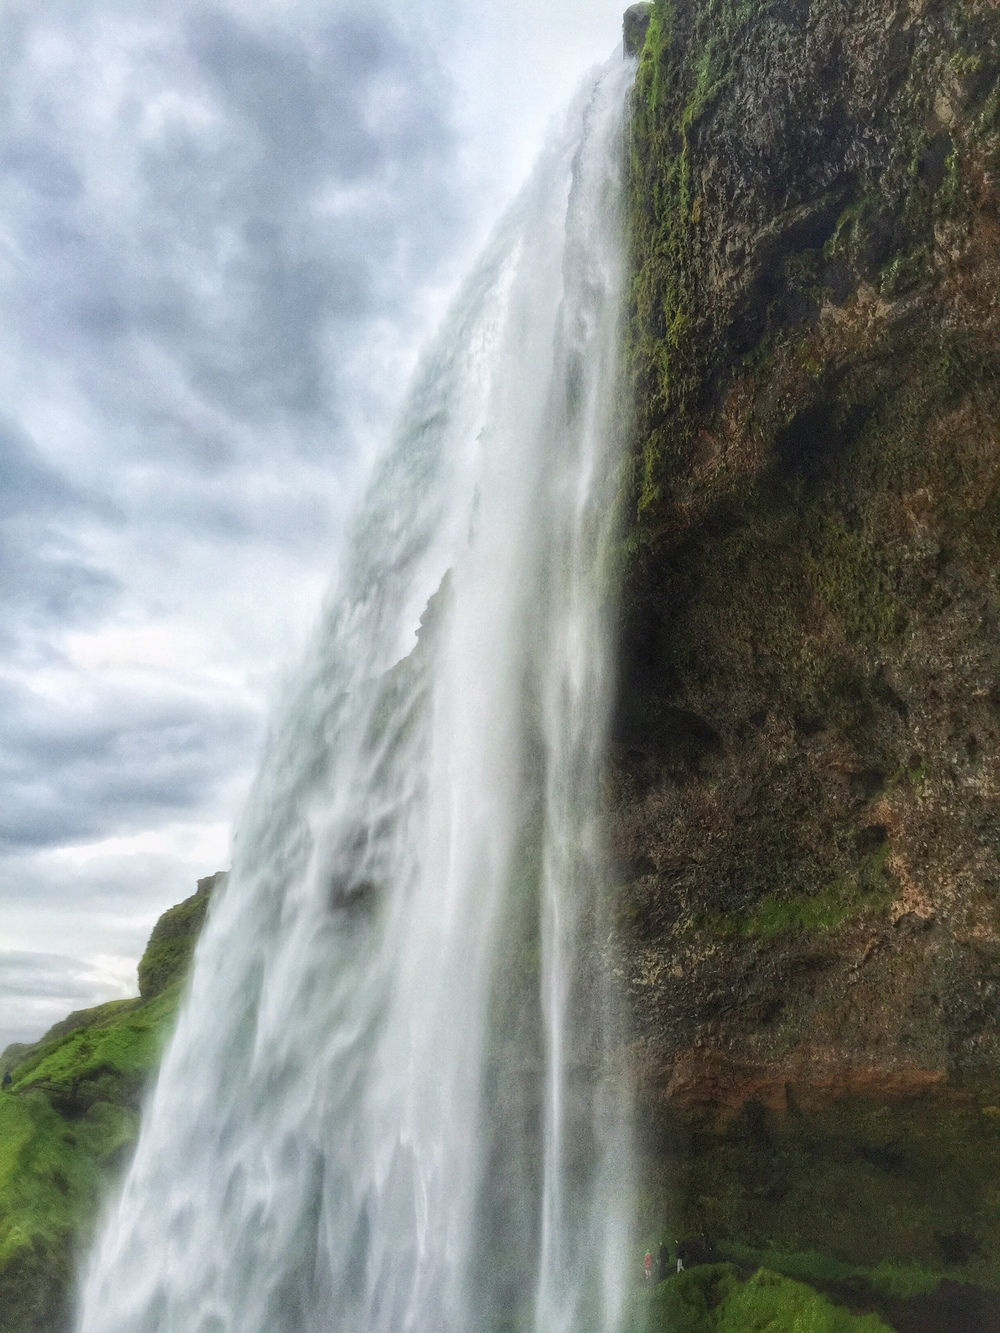 The Seljalandsfoss waterfall near Vik